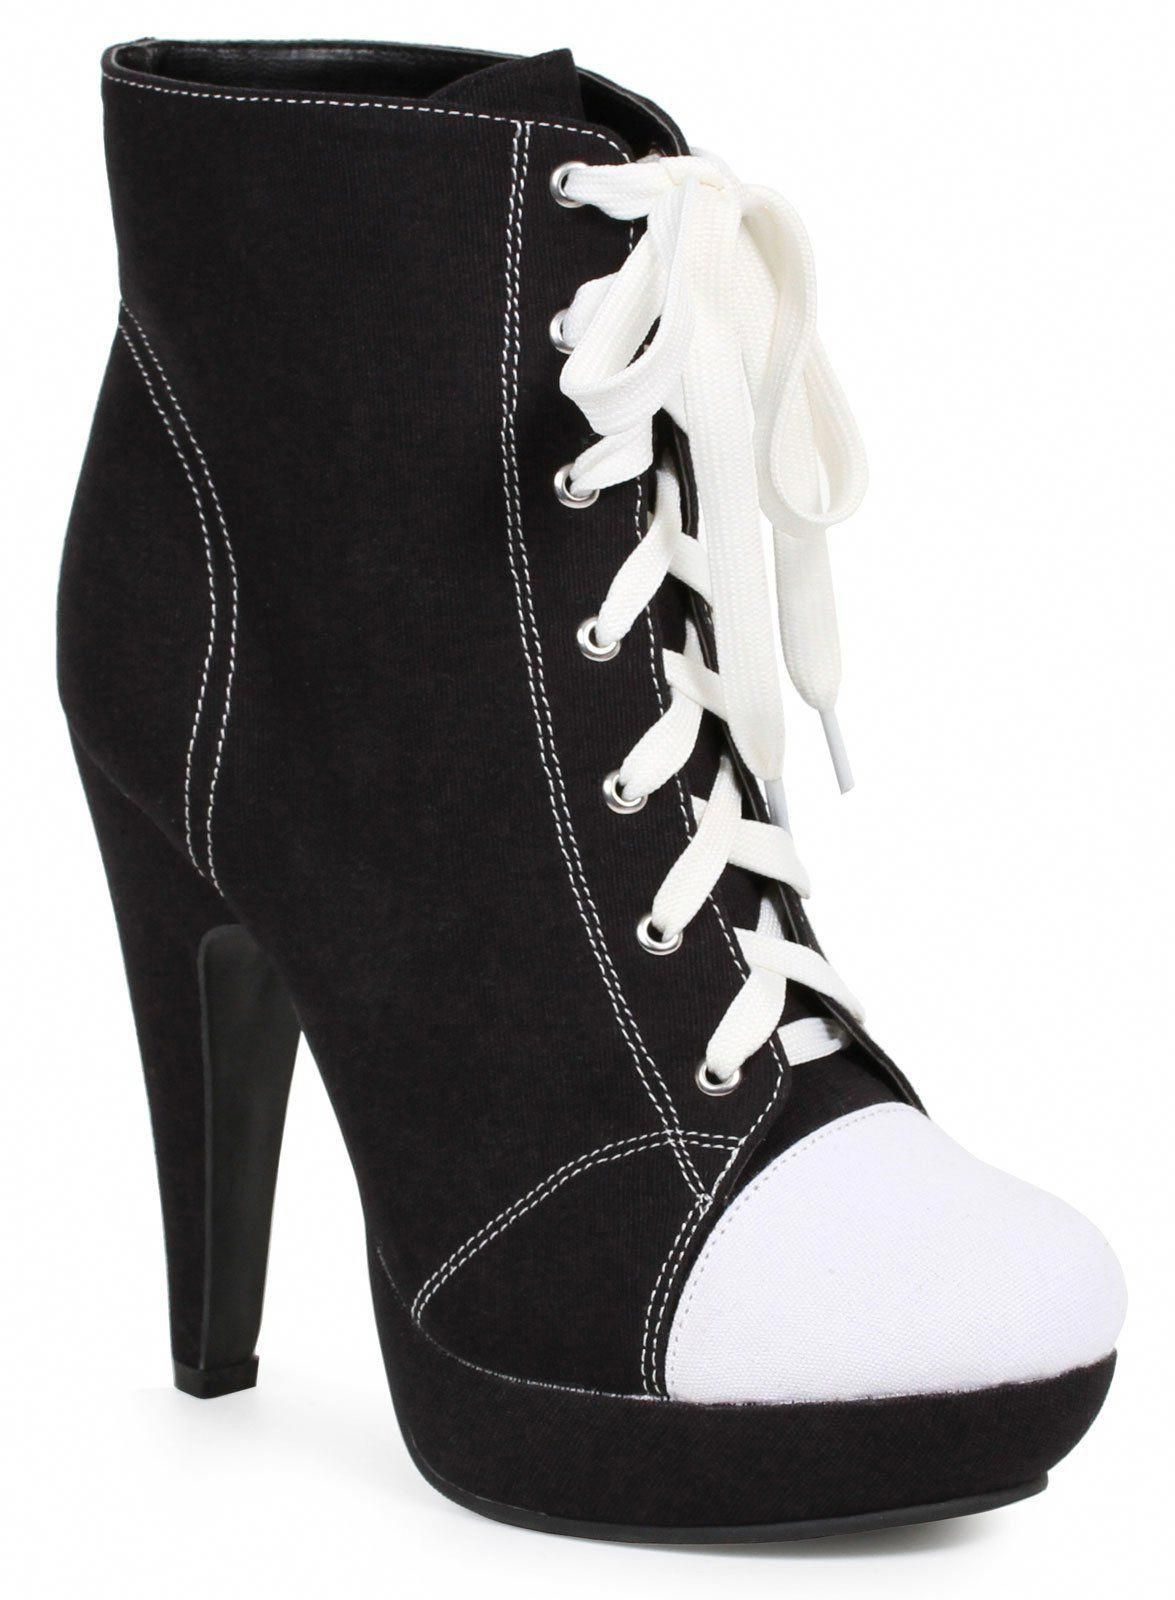 05759a574ac Women s Black Athletic Ankle Boots  Promshoes